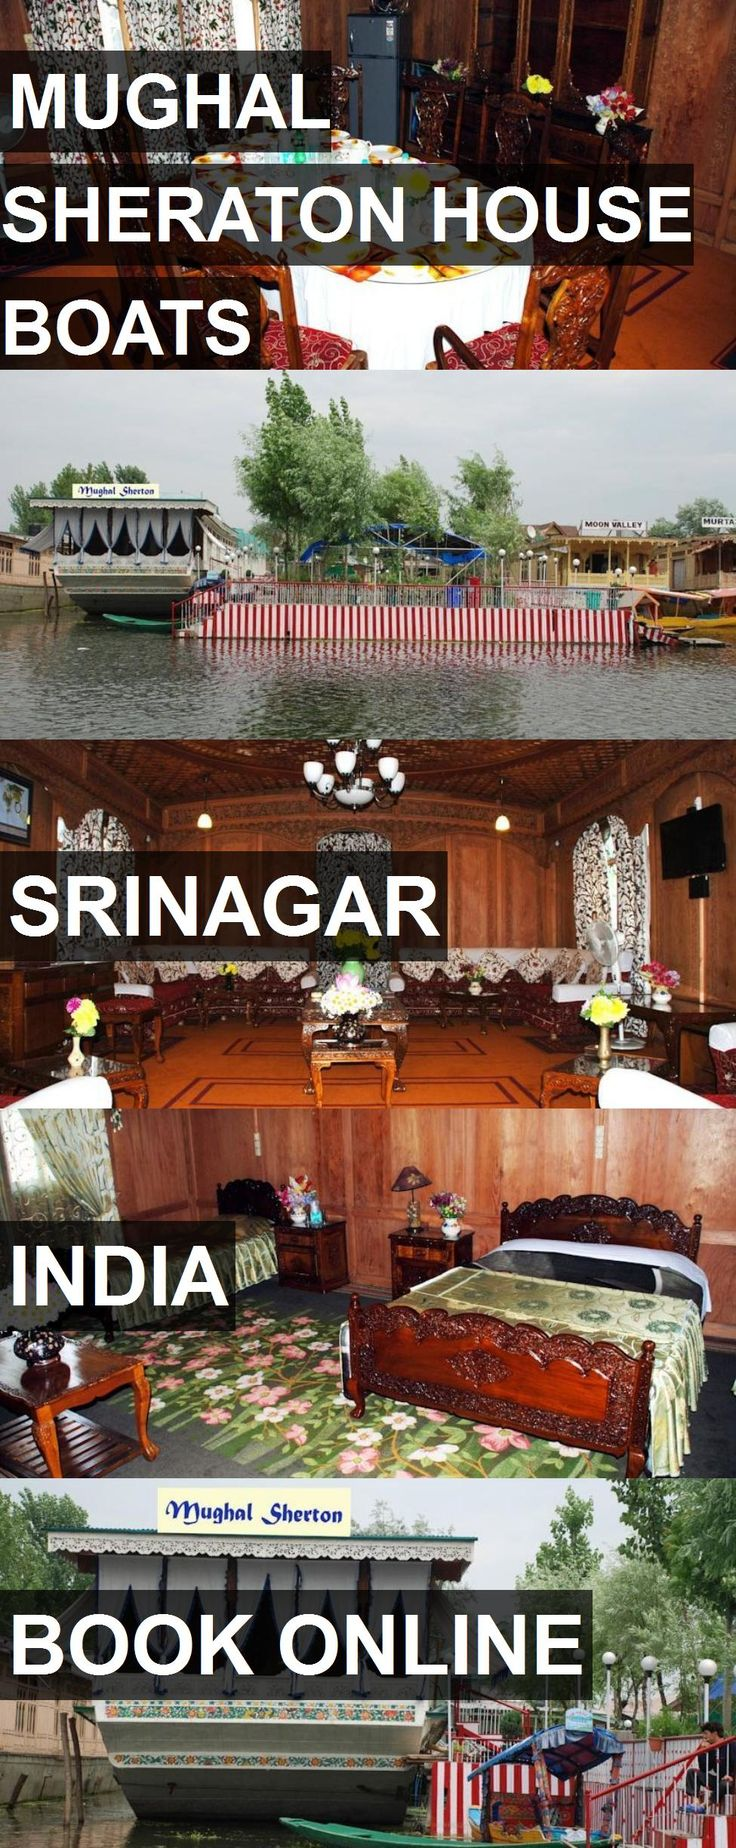 Hotel MUGHAL SHERATON HOUSE BOATS in Srinagar, India. For more information, photos, reviews and best prices please follow the link. #India #Srinagar #MUGHALSHERATONHOUSEBOATS #hotel #travel #vacation